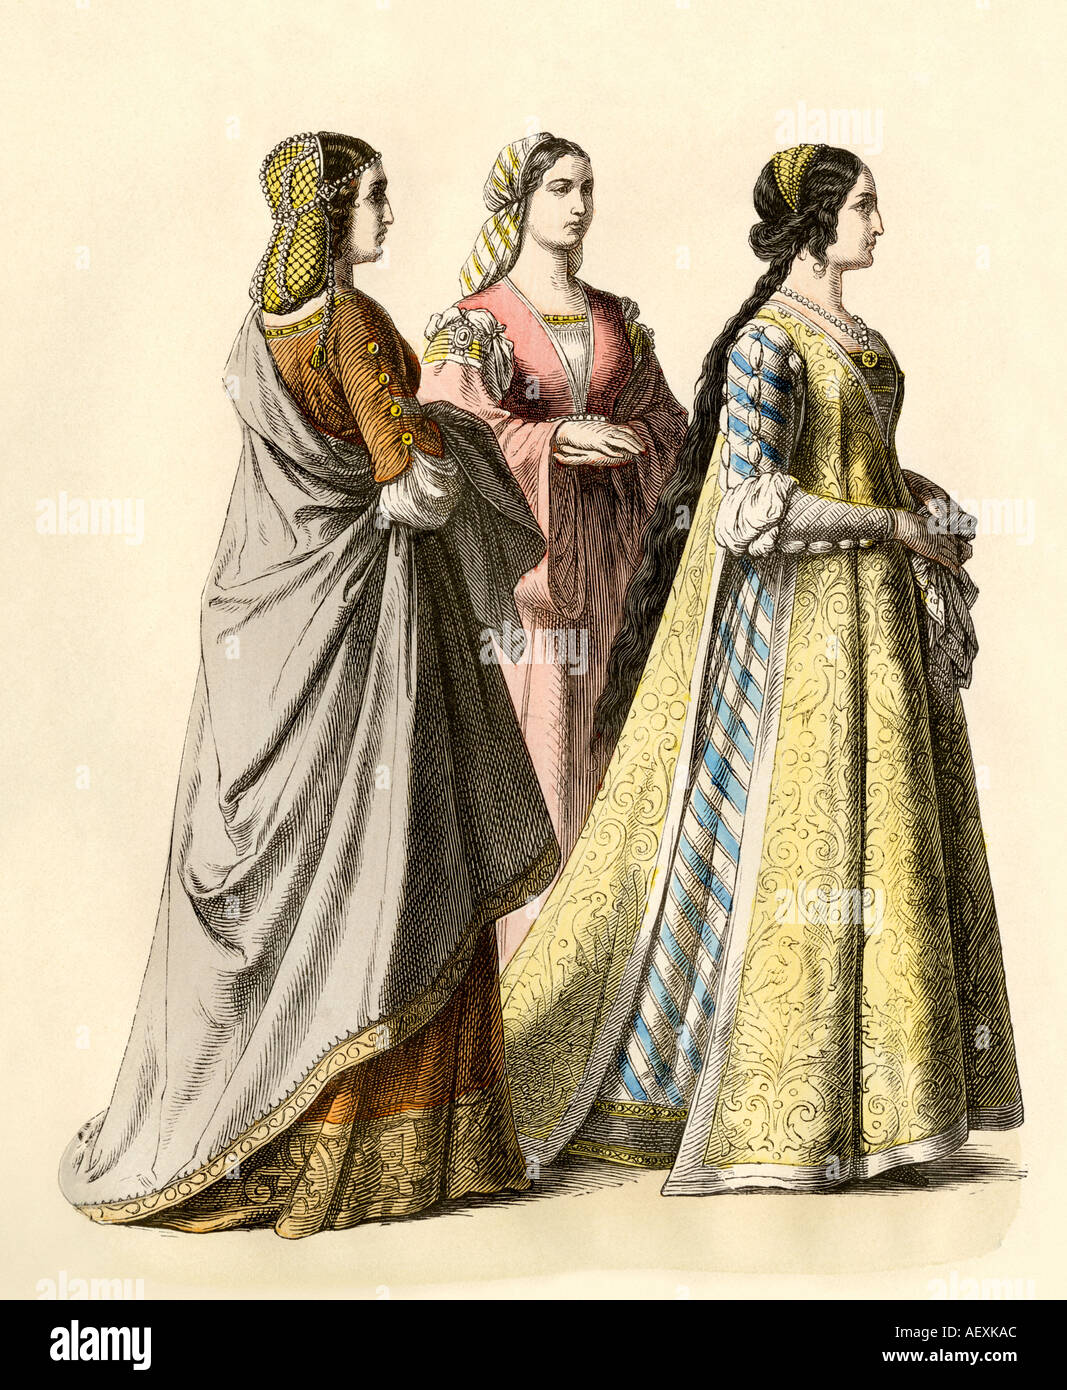 Noble ladies of Florence during the Renaissance or early 1400s. Hand-colored print - Stock Image